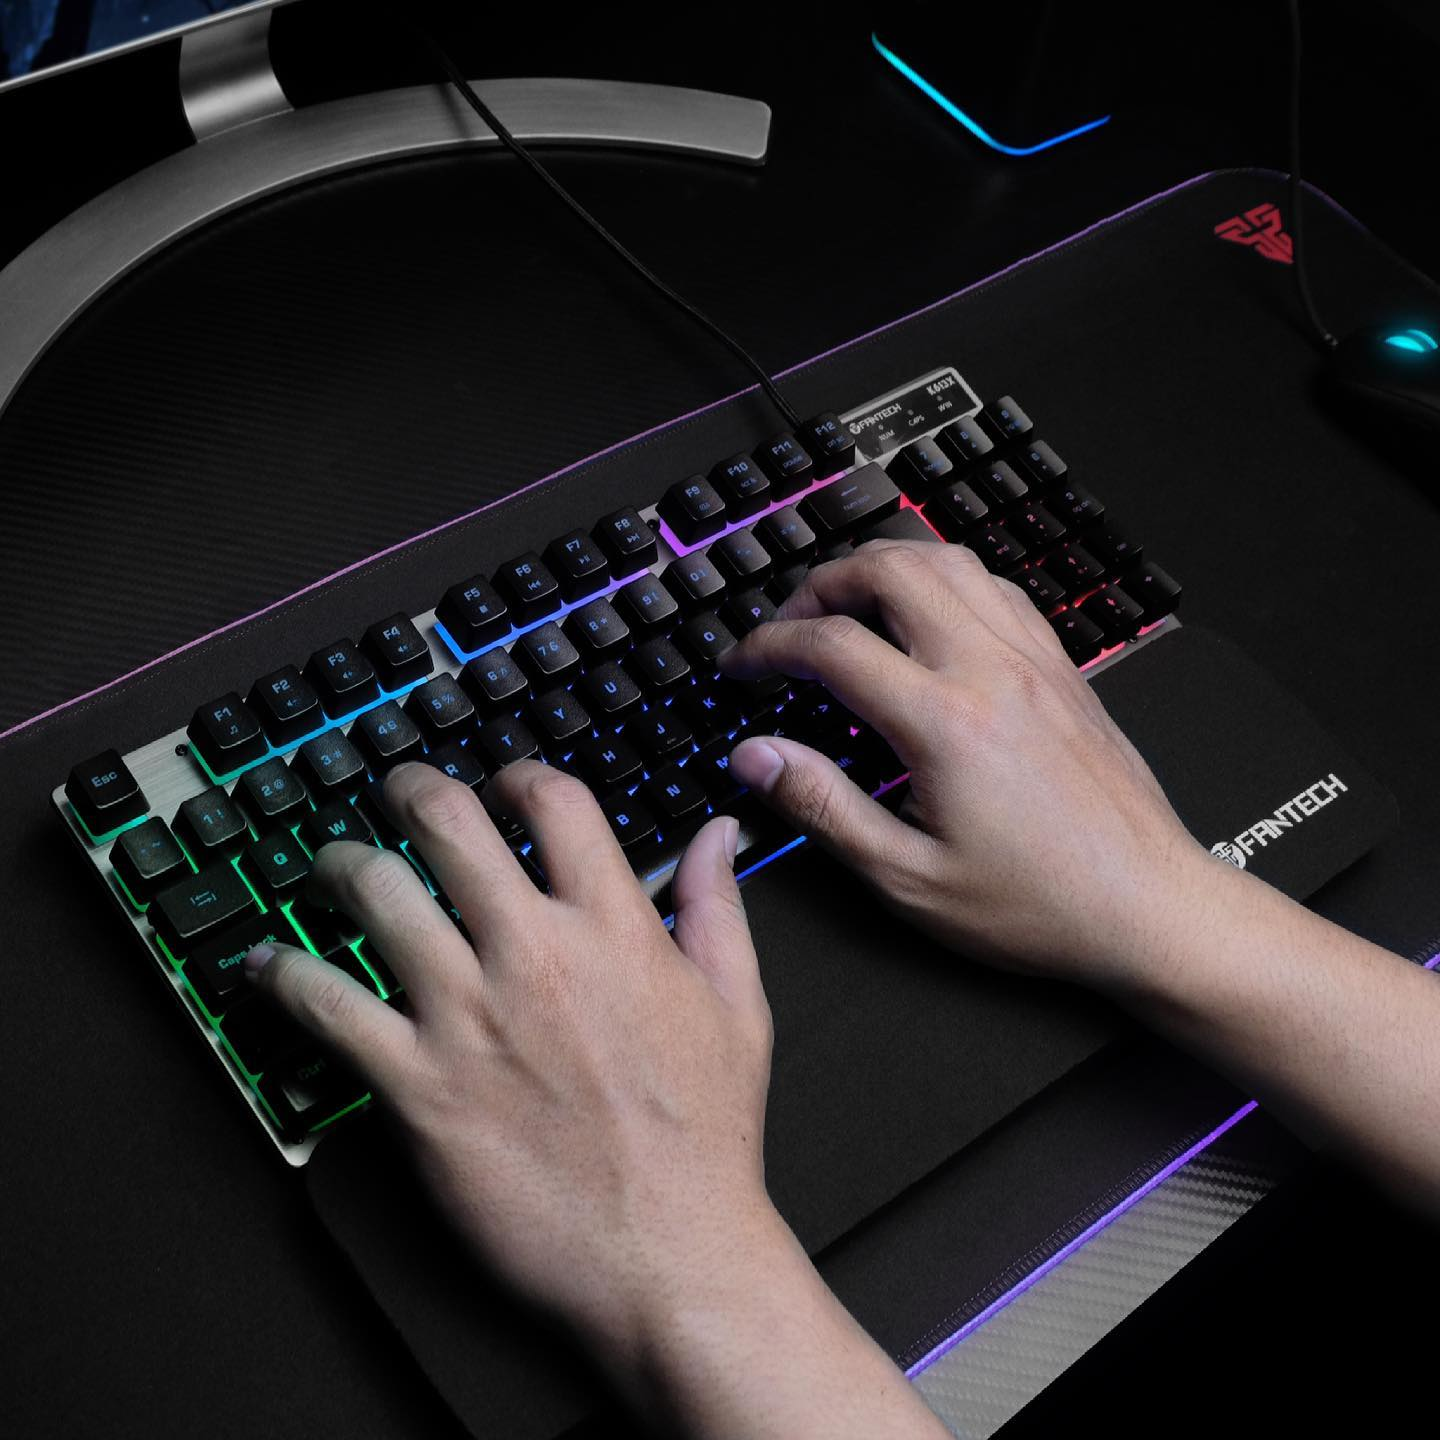 Get your game on with Fantech K613X! Featuring an ultra small form factor, full key set, and RGB backlight, all within an aluminium frame! Don't wait to destroy the competition! Gear up and win!